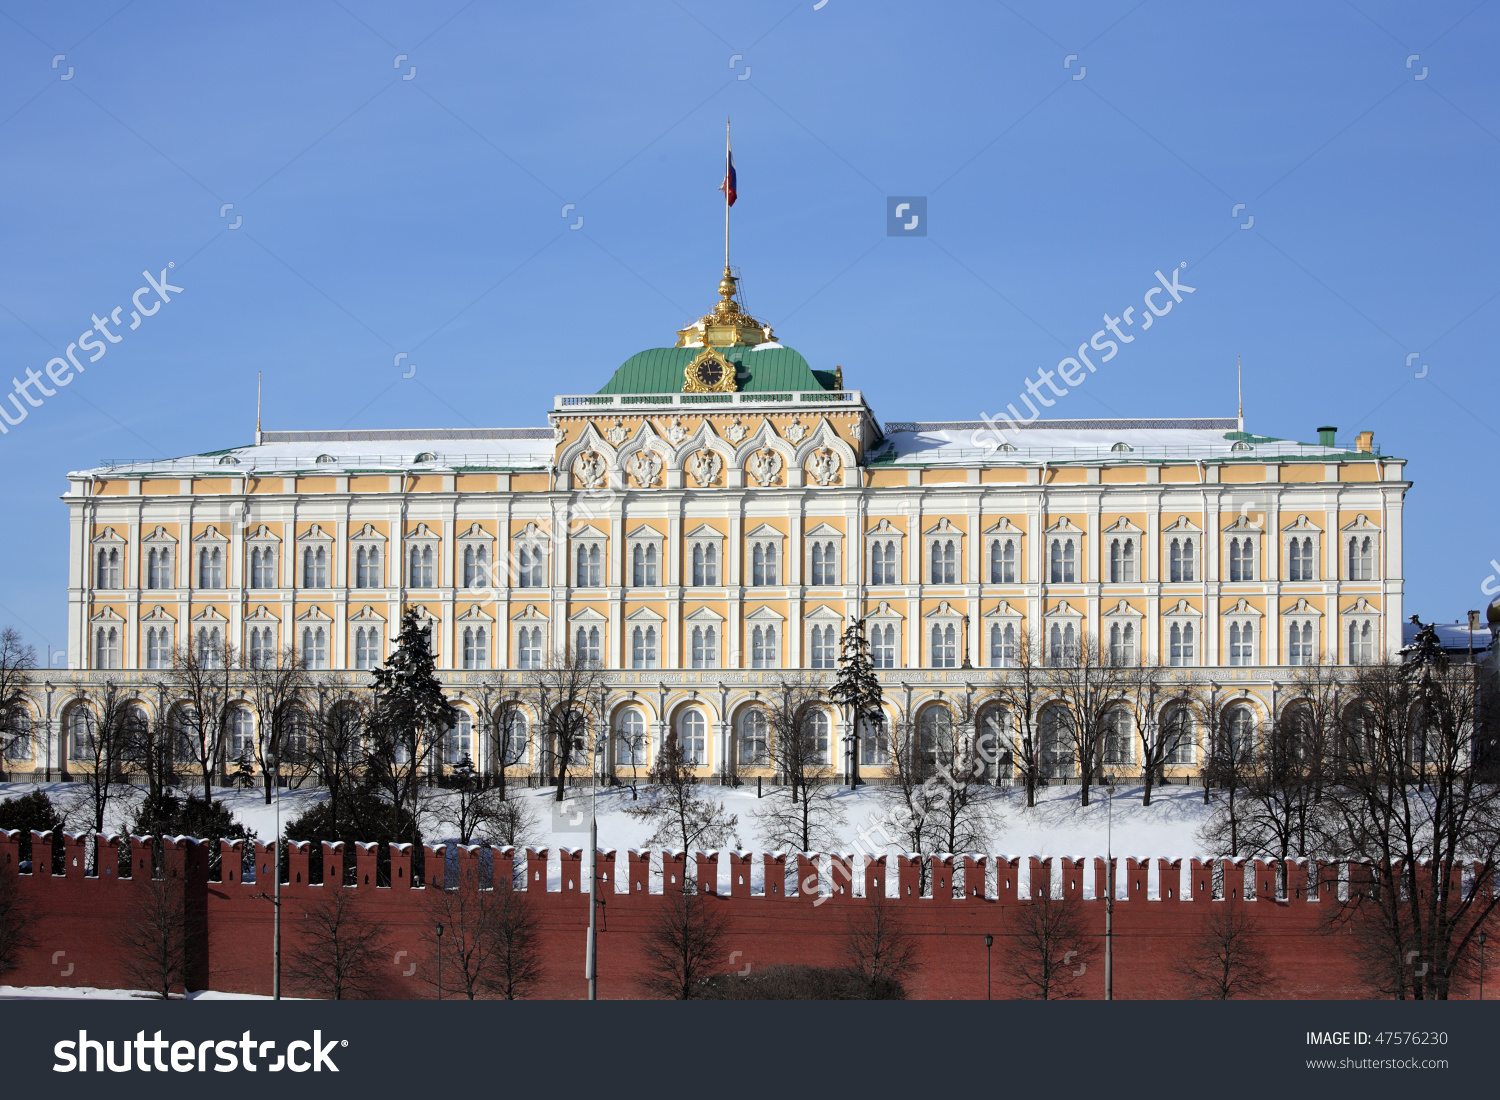 Grand kremlin palace clipart #3